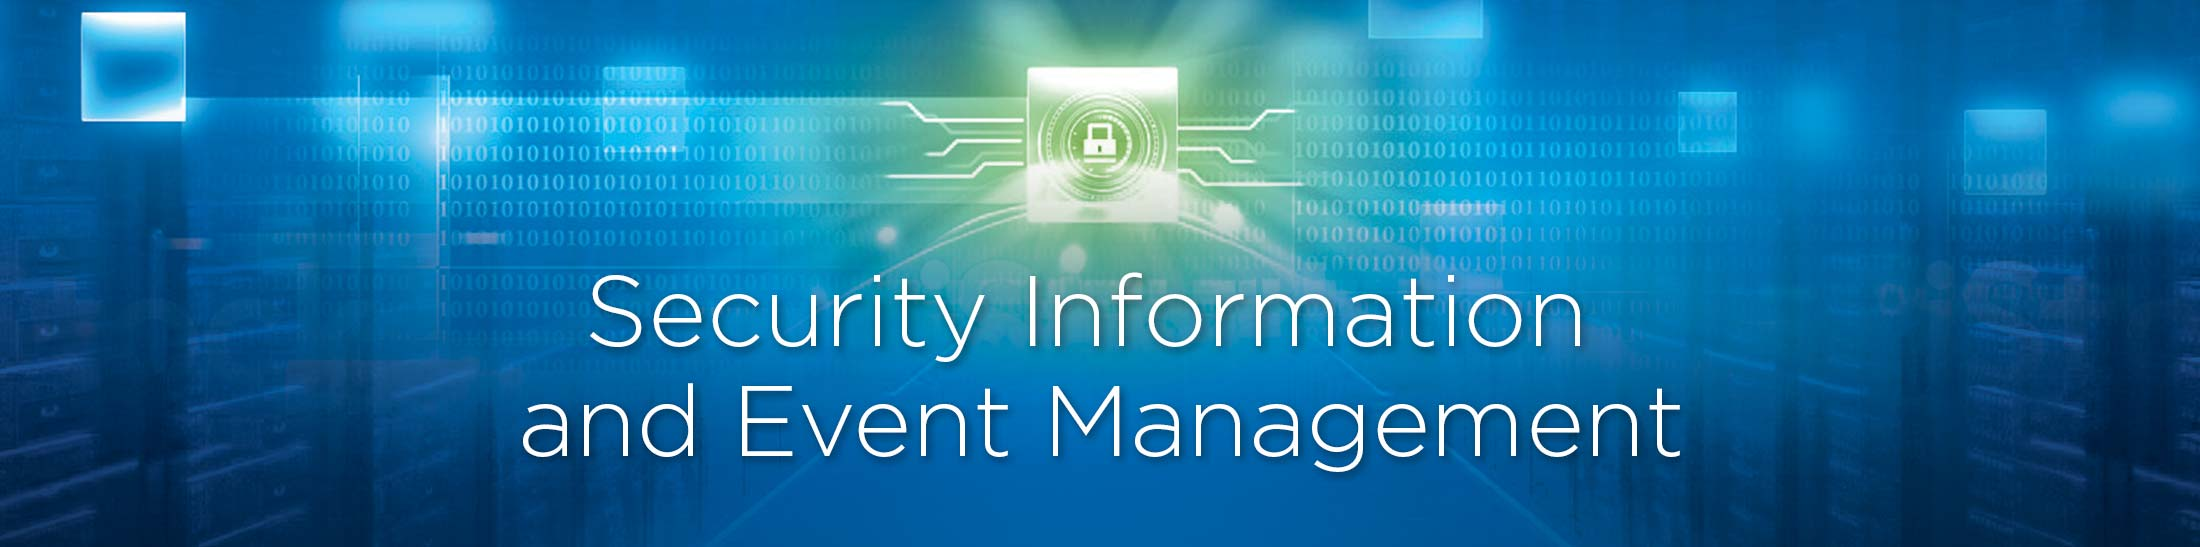 Security Information And Event Management  Harbour It. What Is A Reversed Mortgage Fios Ip Address. Assisted Living In Hawaii Skin Masks For Acne. What Are Causes Of Erectile Dysfunction. Get Auto Insurance Quotes Greer Vision Center. Member Database Software Plumbers Bend Oregon. Itil Certification Exin Organics Baby Formula. Foundation Repair Lincoln Ne Fx Trader Pro. Dragon Naturallyspeaking 10 1